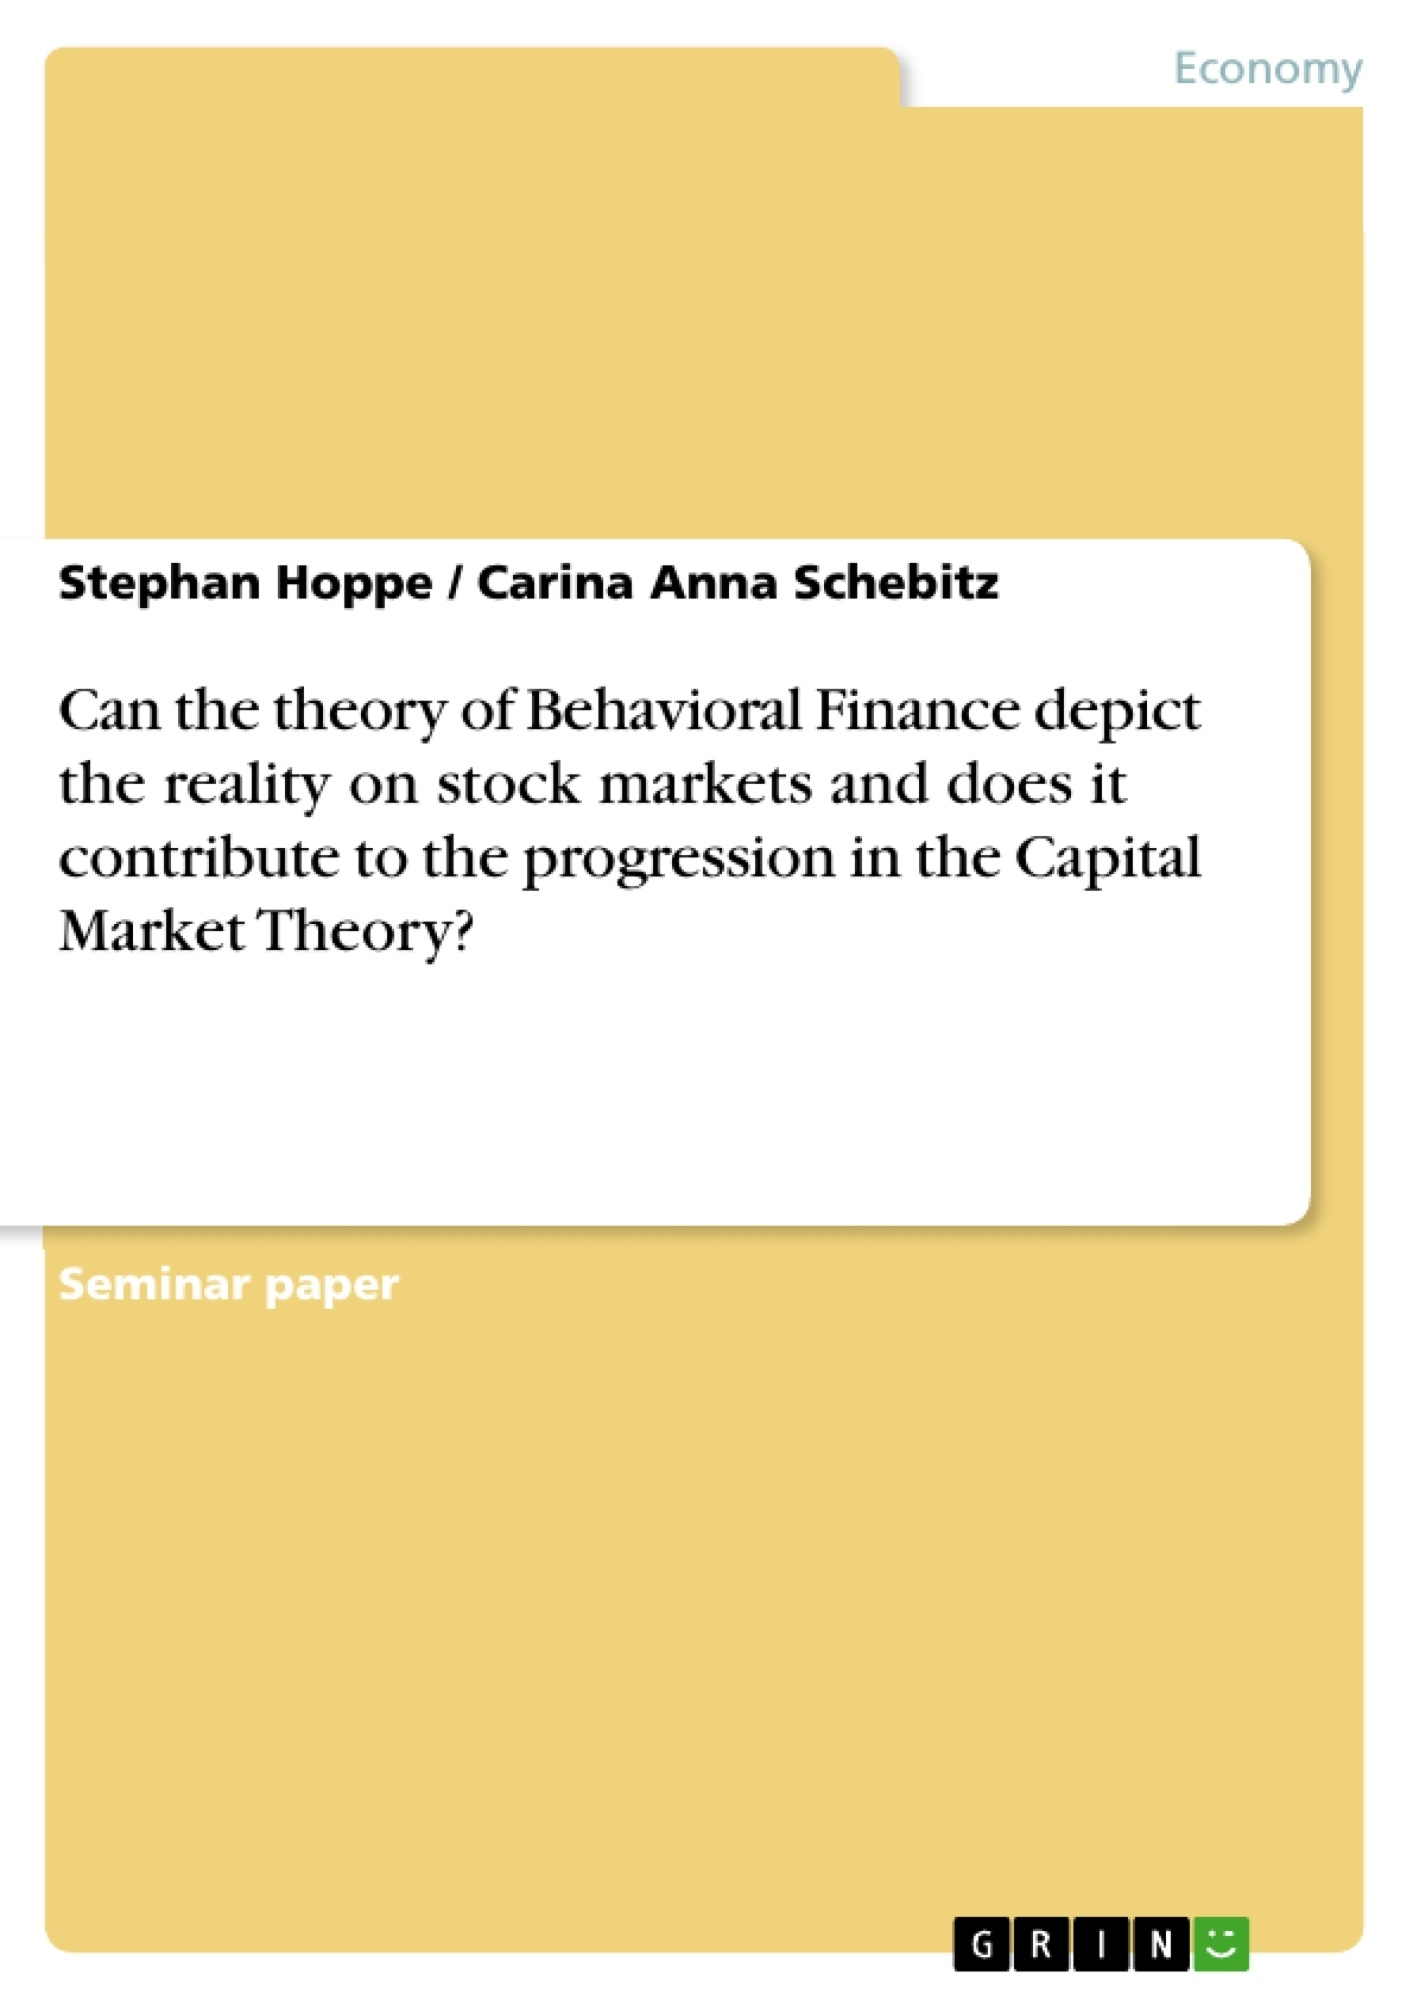 Title: Can the theory of Behavioral Finance depict the reality on stock markets and does it contribute to the progression in the Capital Market Theory?